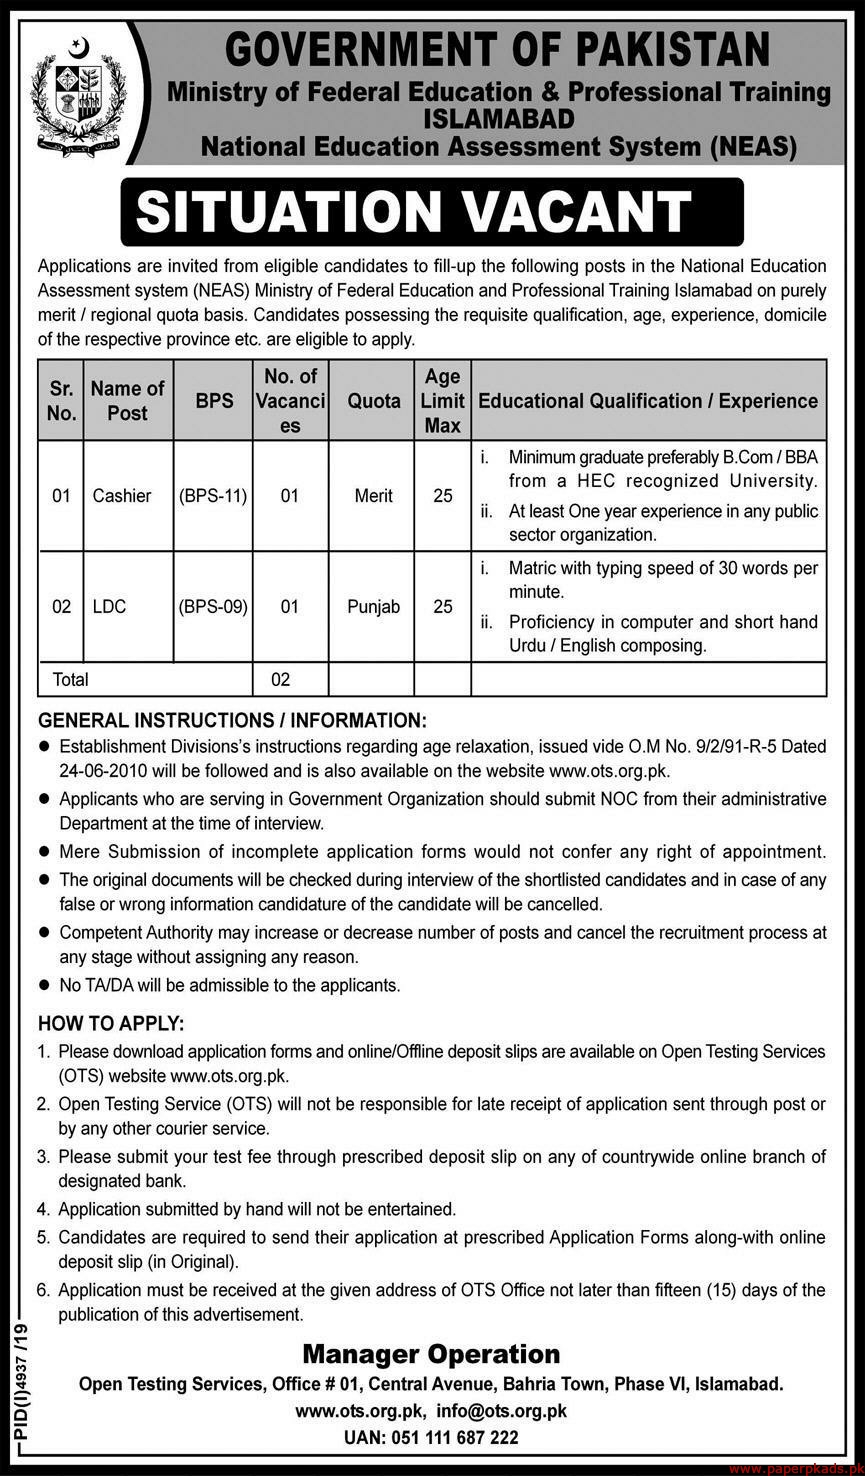 Ministry of Federal Education & Professional Training Islamabad Jobs 2020 Latest